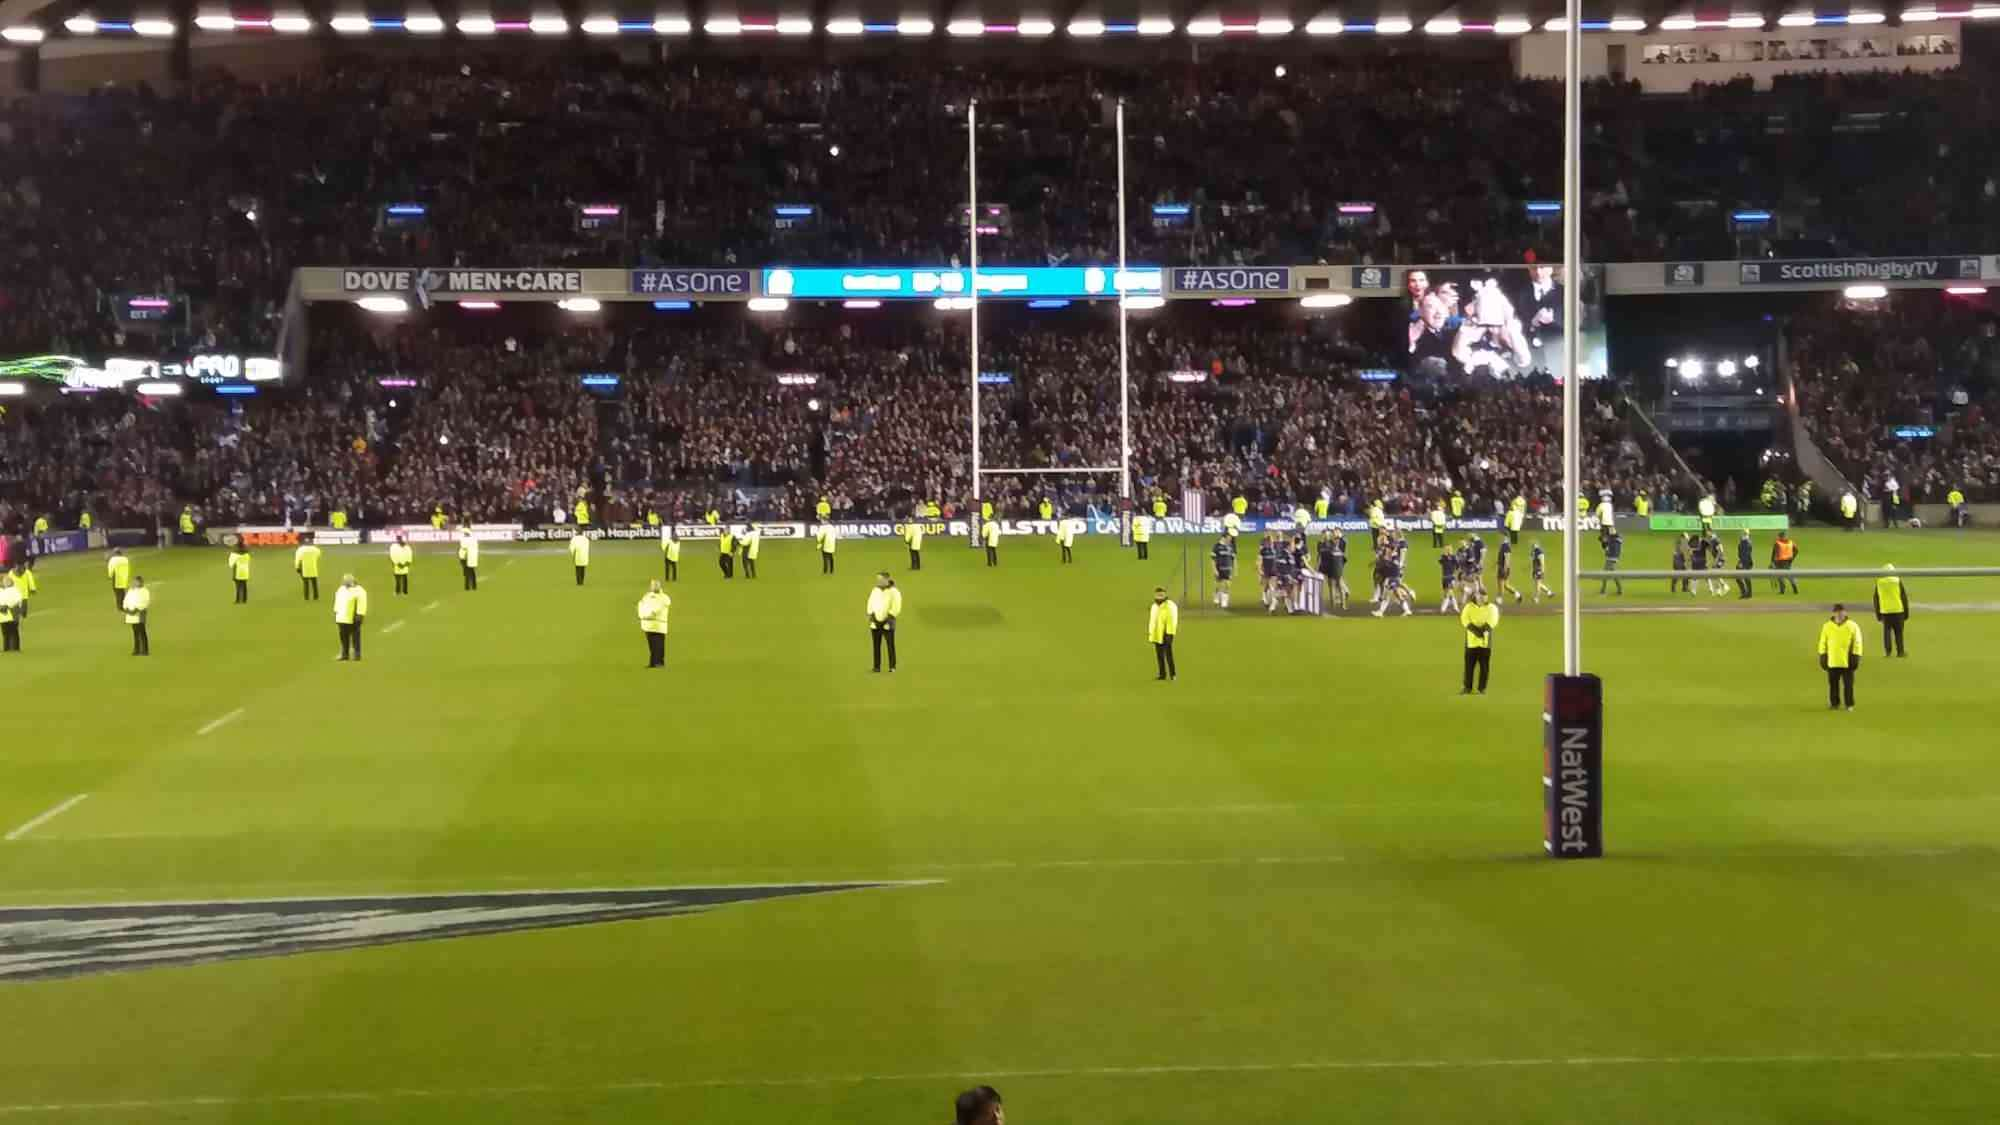 View from Seat Block N9 at Murrayfield